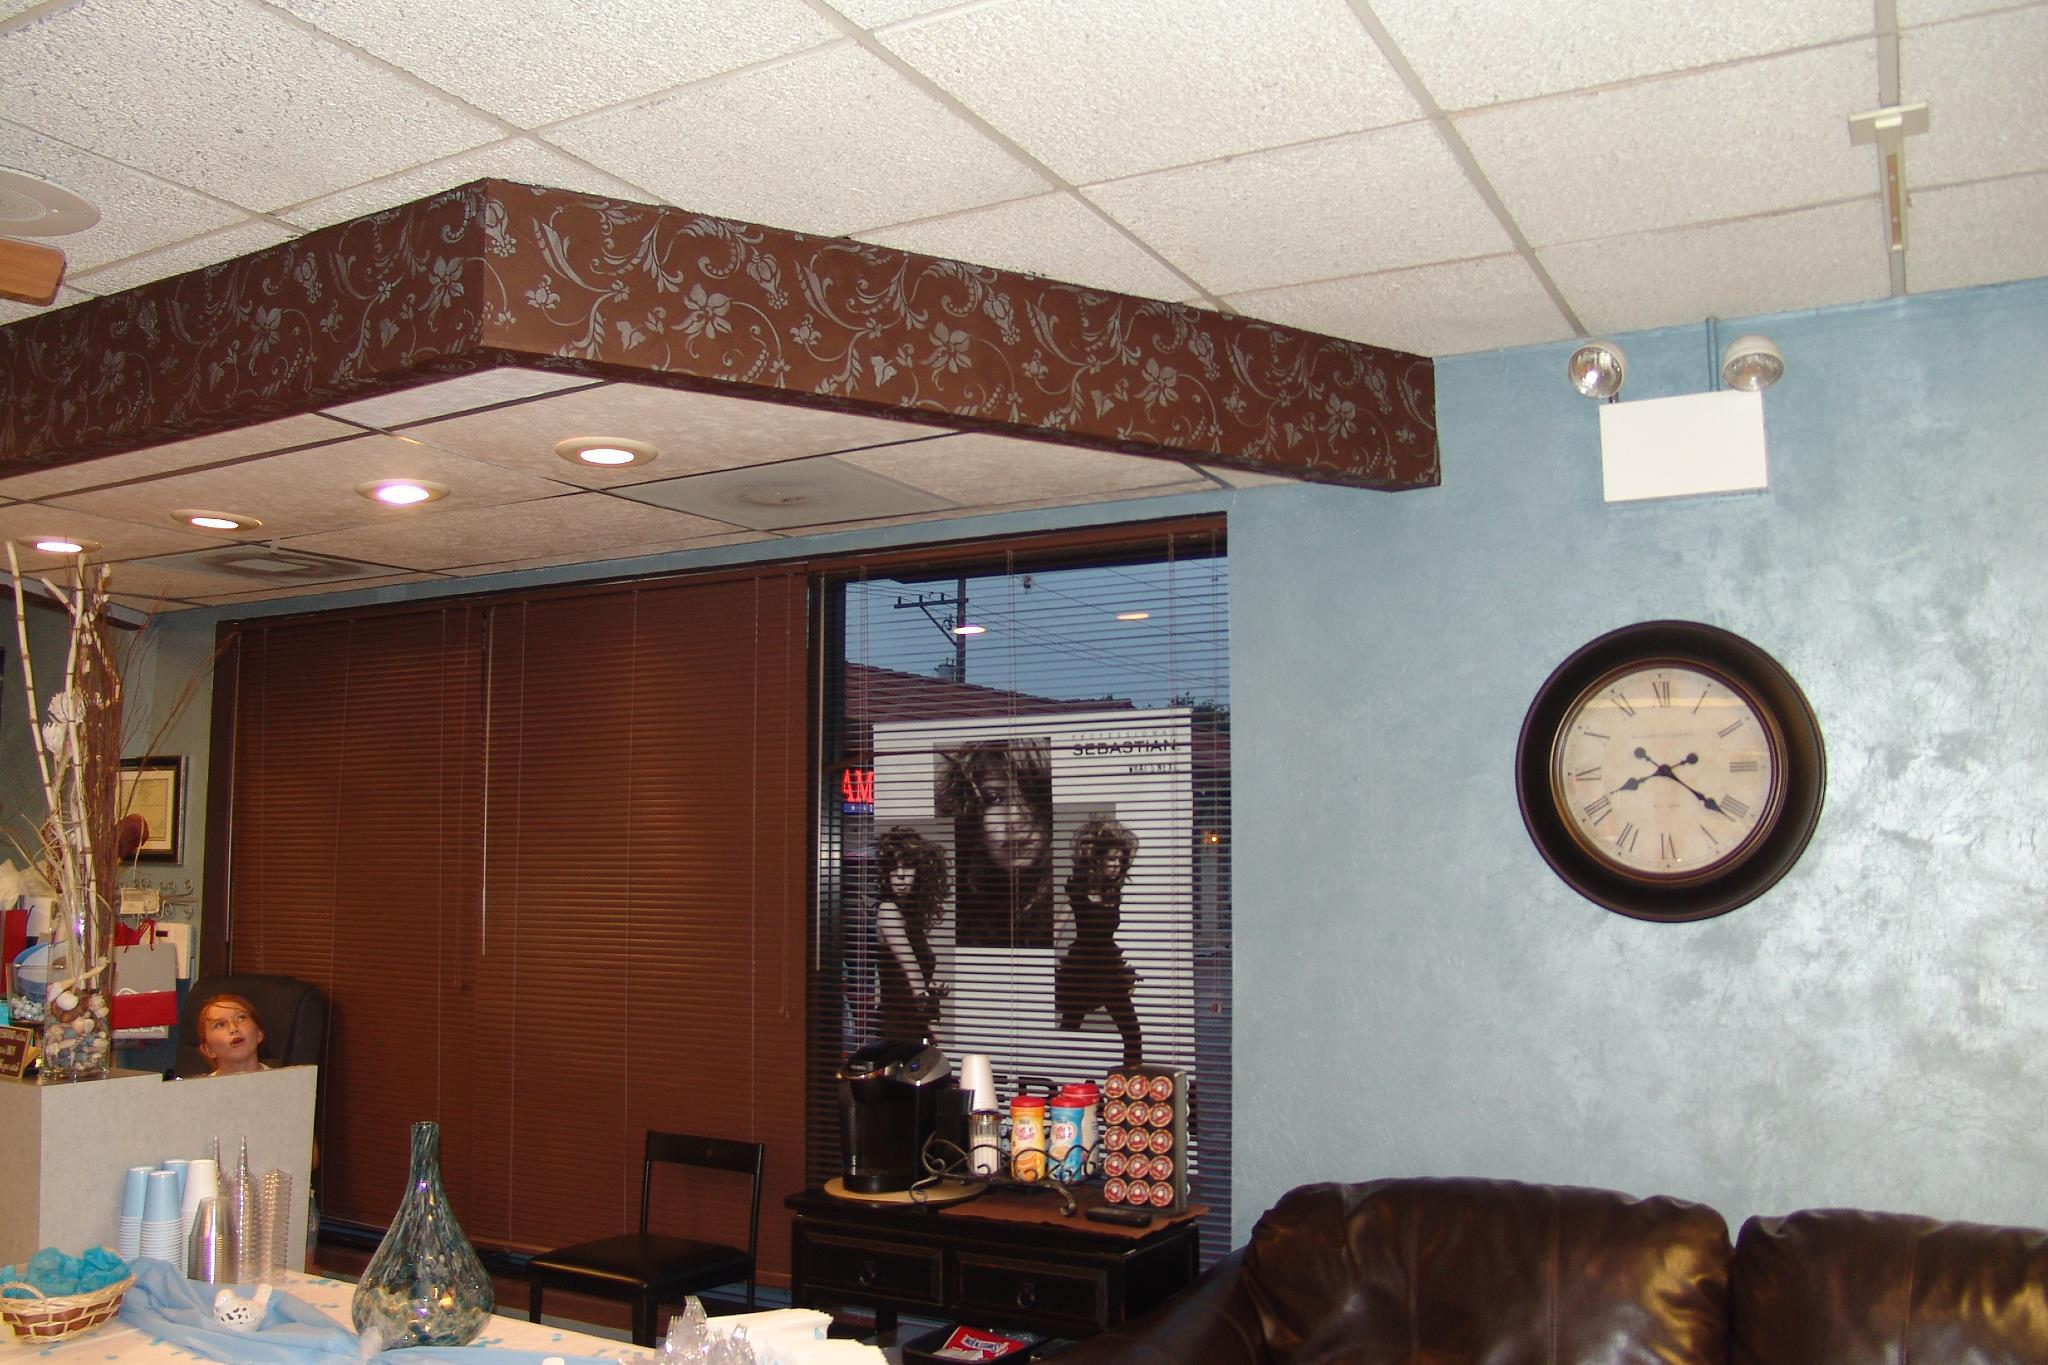 Ann Art Faux Finishes image 10